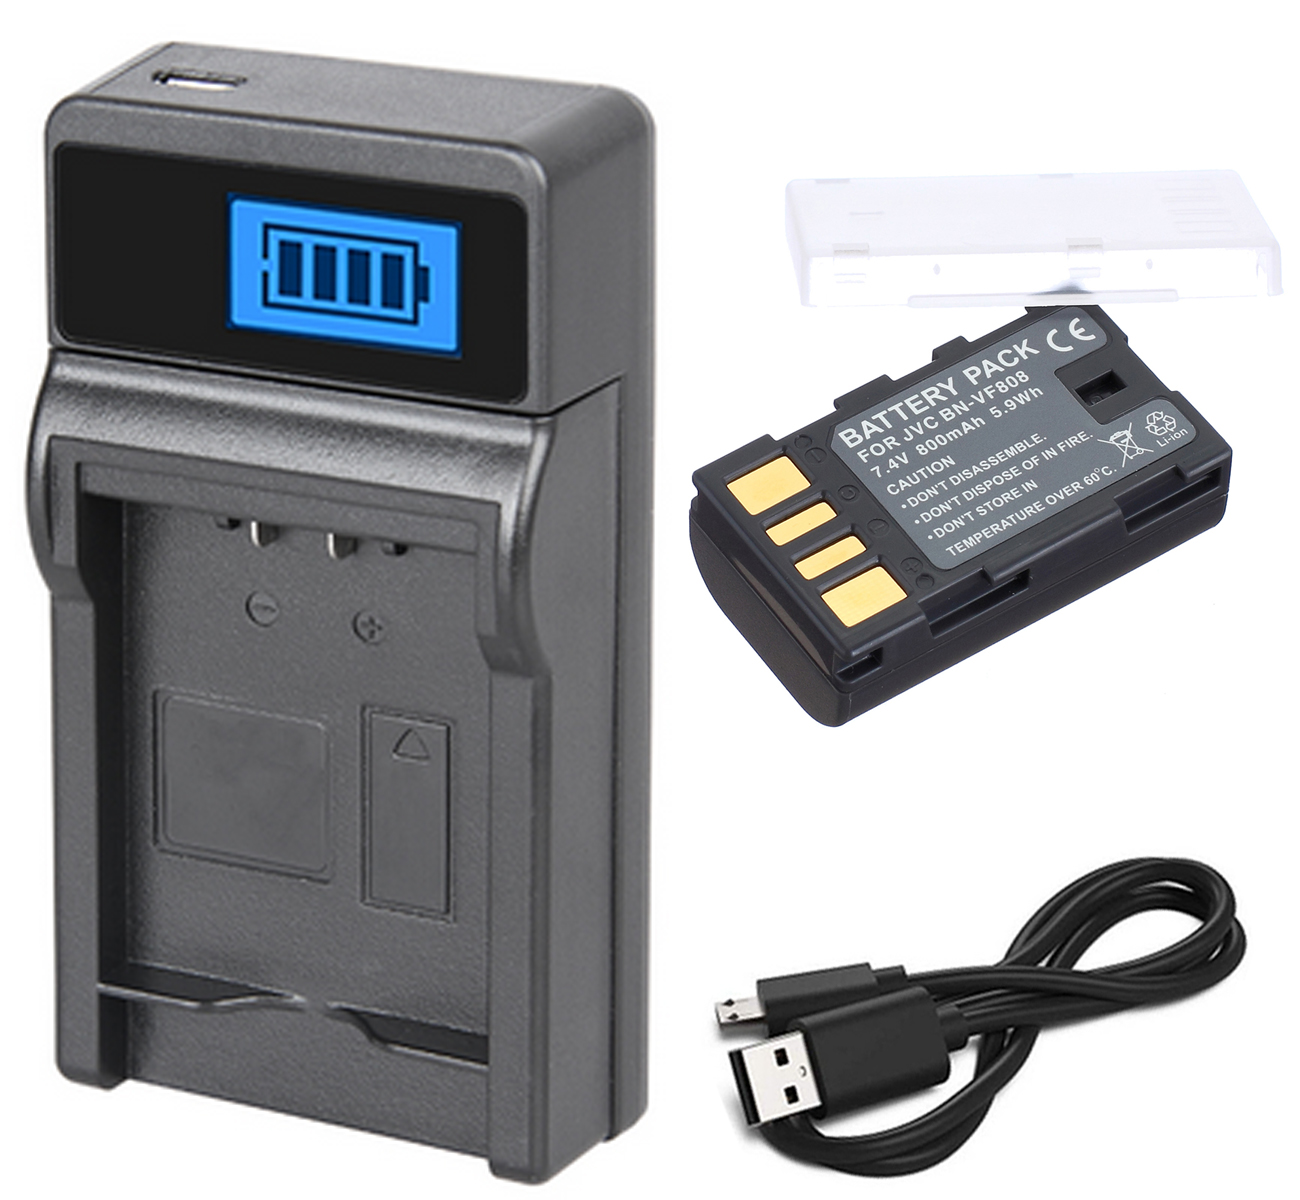 GZ-MG365U GZ-MG365BU LCD USB Battery Charger for JVC Everio GZ-MG365 GZ-MG365BUS Camcorder